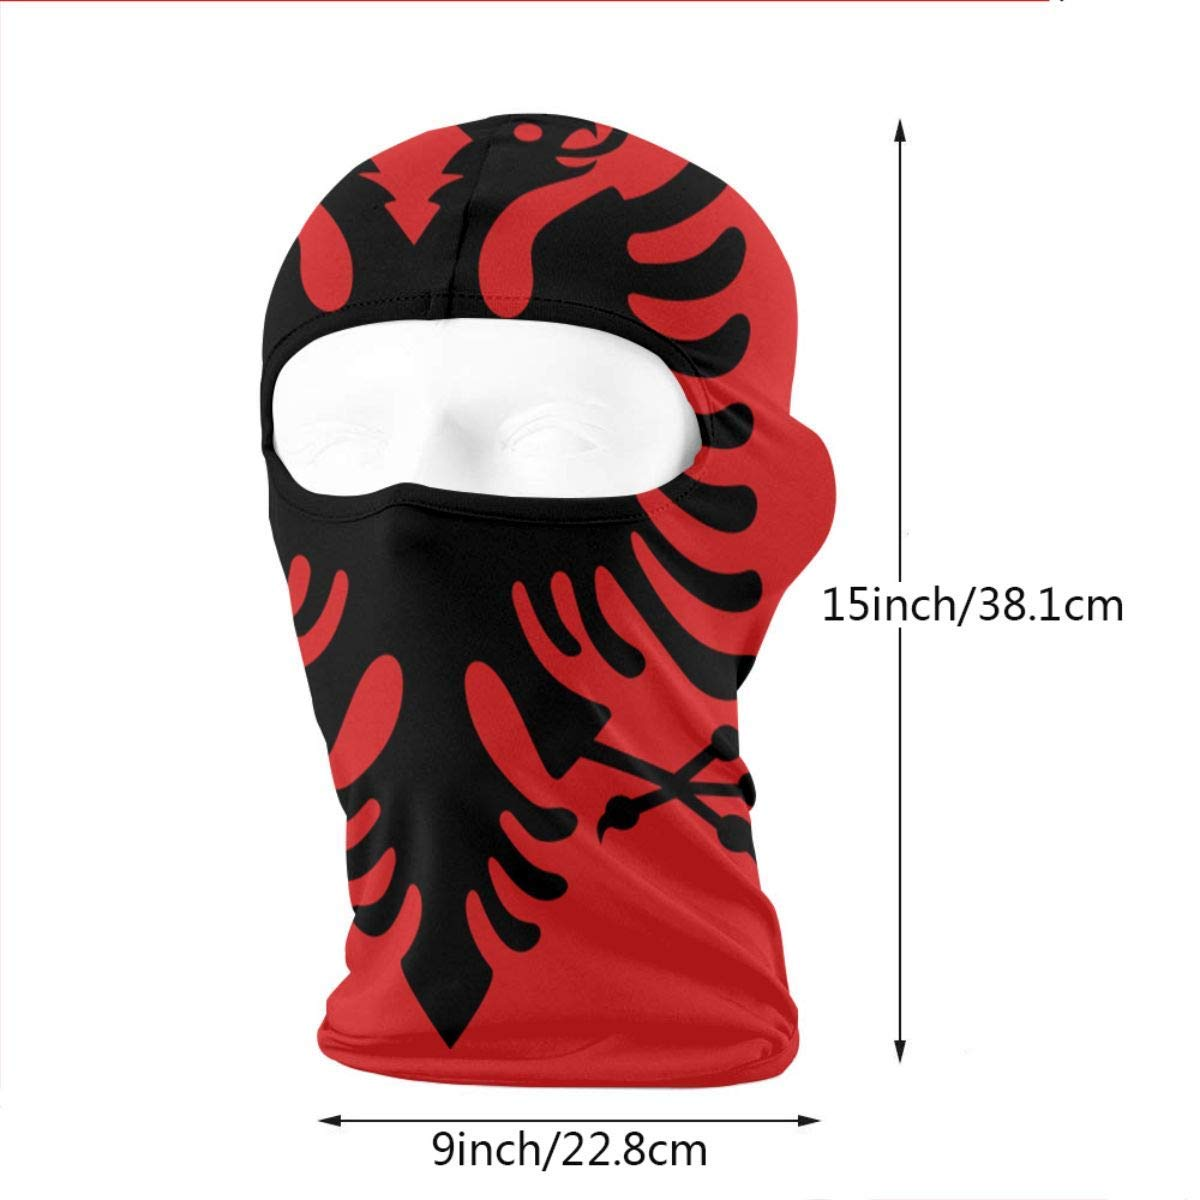 Sdltkhy Neck Scarf Sunscreen Hats Ski Mask Flag of Albania Sun UV Protection Dust Protection Wind-Resistant Maschera Viso for Running Cycling Fishing